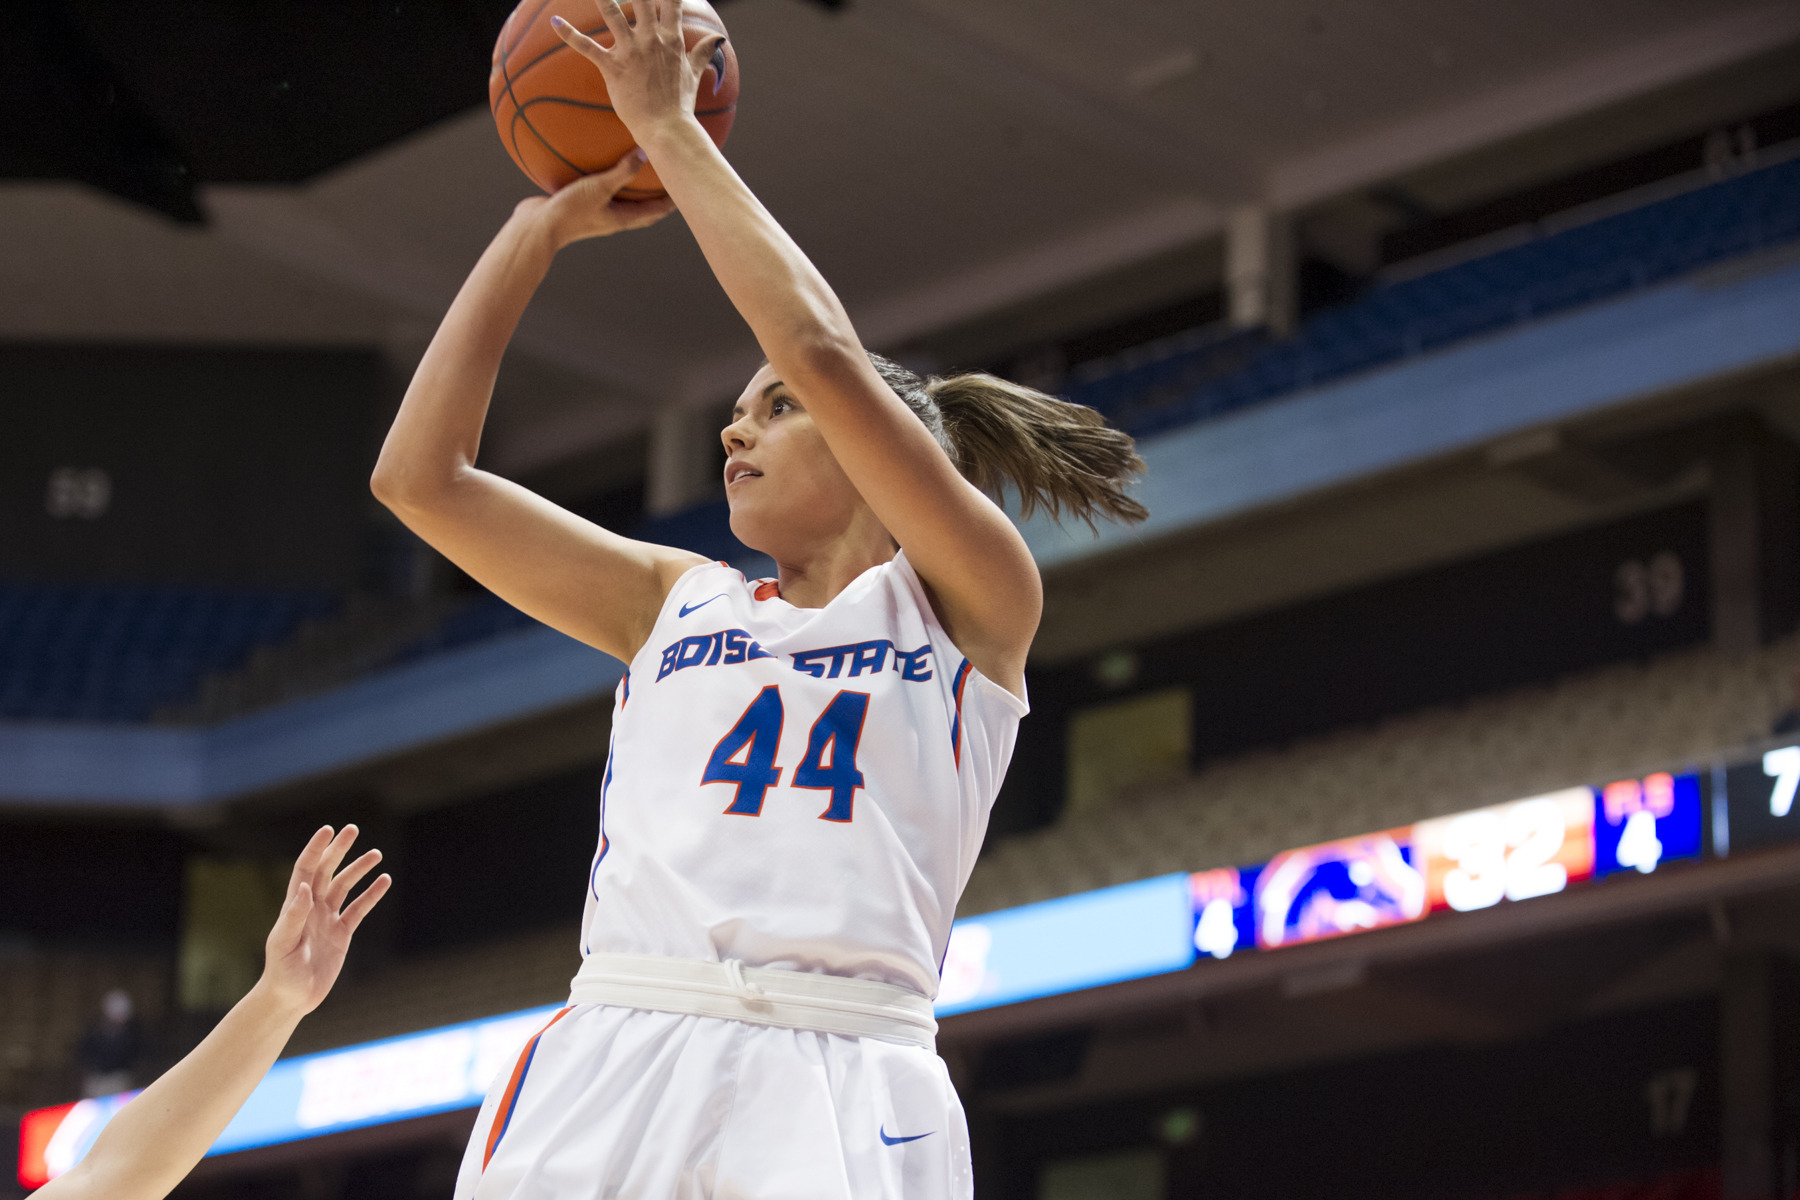 Brooke Pahukoa had a team-high 23 points in 25 minutes.